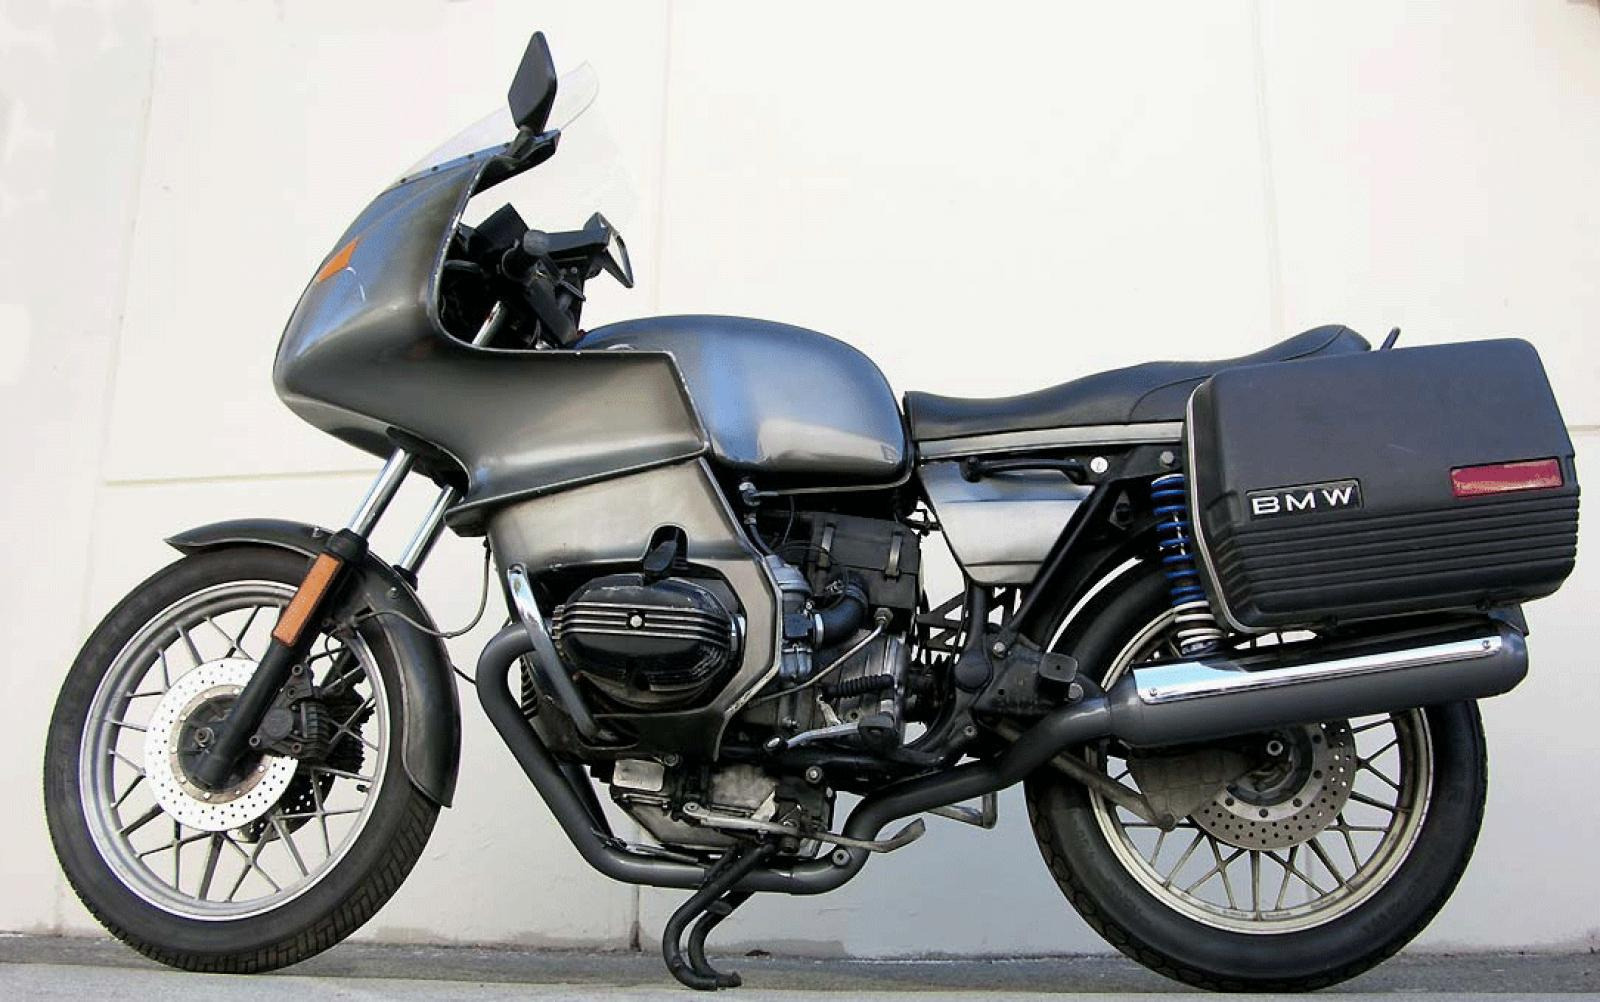 BMW R100CS 1980 images #12560